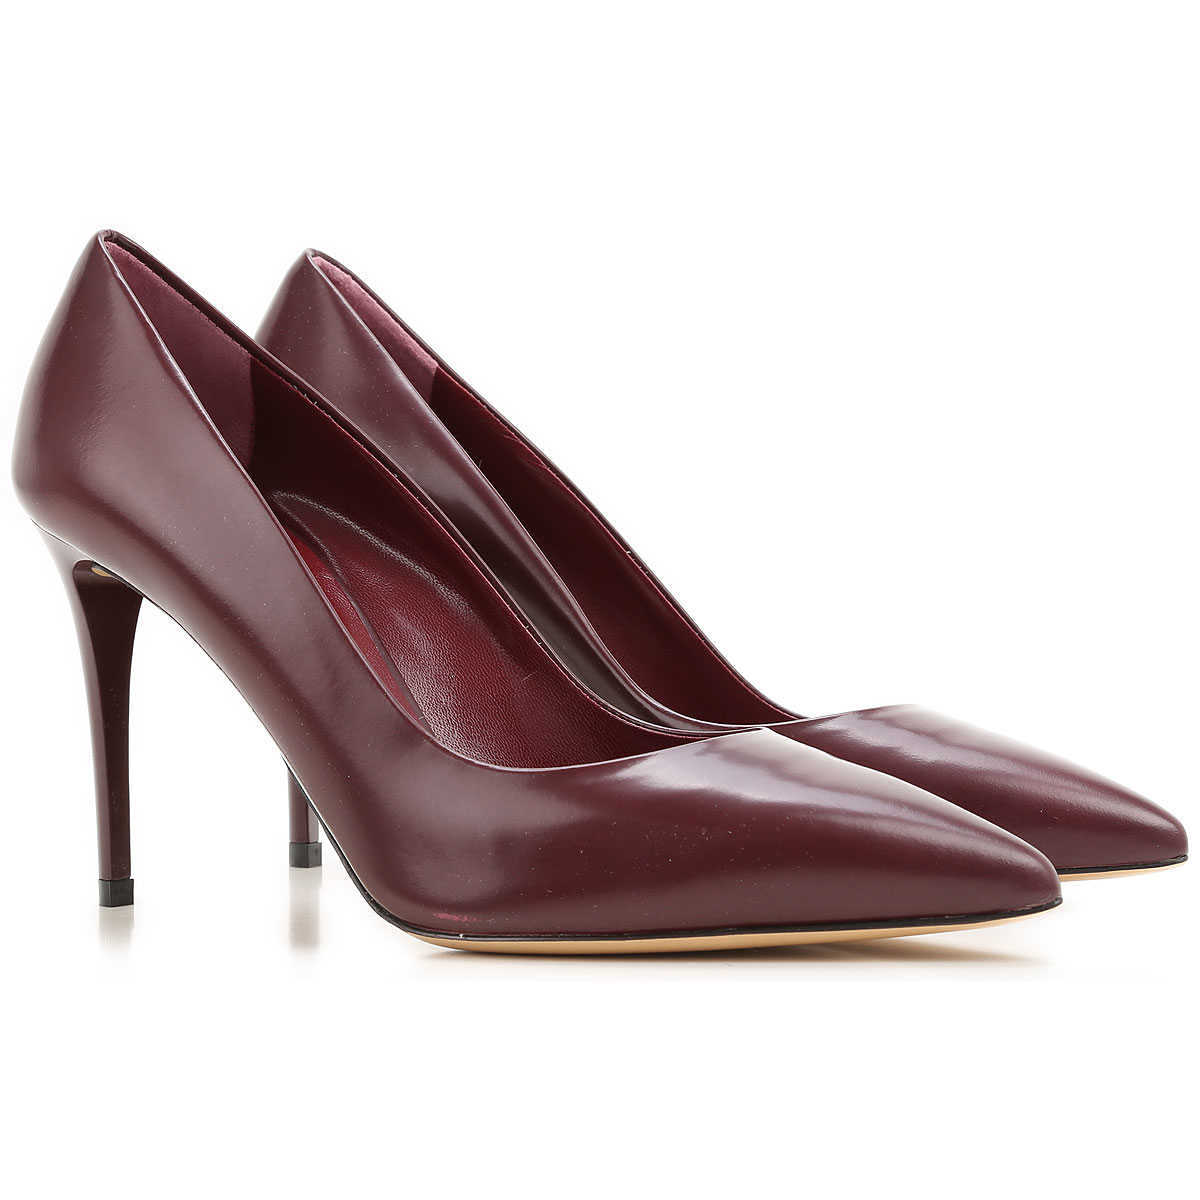 Nina Lilou Pumps & High Heels for Women in Outlet Bordeaux Canada - GOOFASH - Womens PUMPS